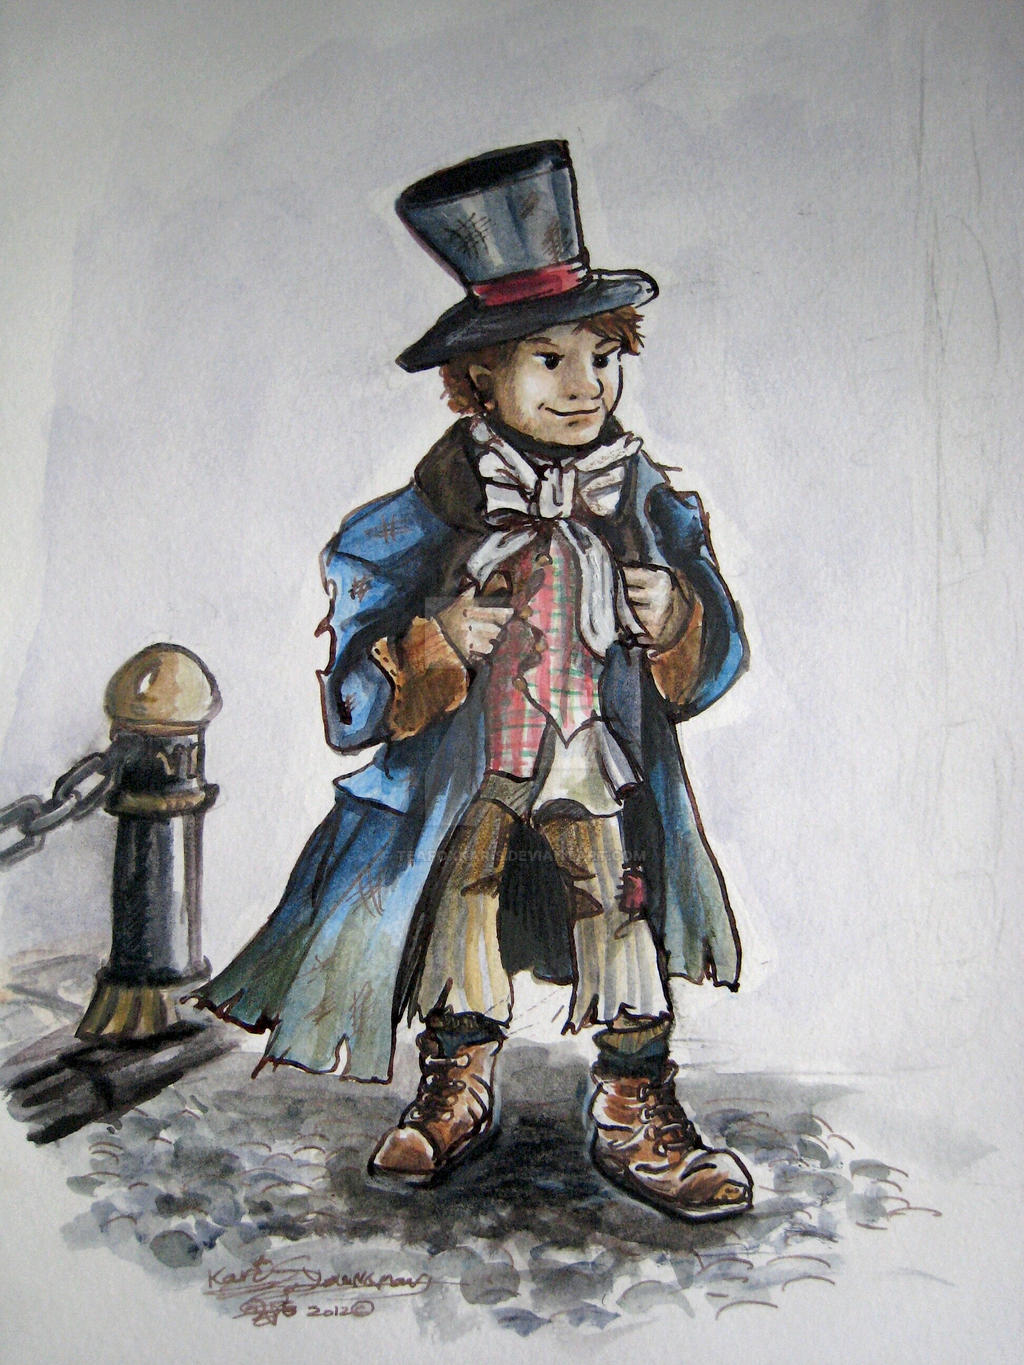 an examination of the character of oliver twist by charles dickens Literature network » charles dickens » oliver twist » chapter 21  literature network » charles dickens » oliver twist » chapter 21  character summary.